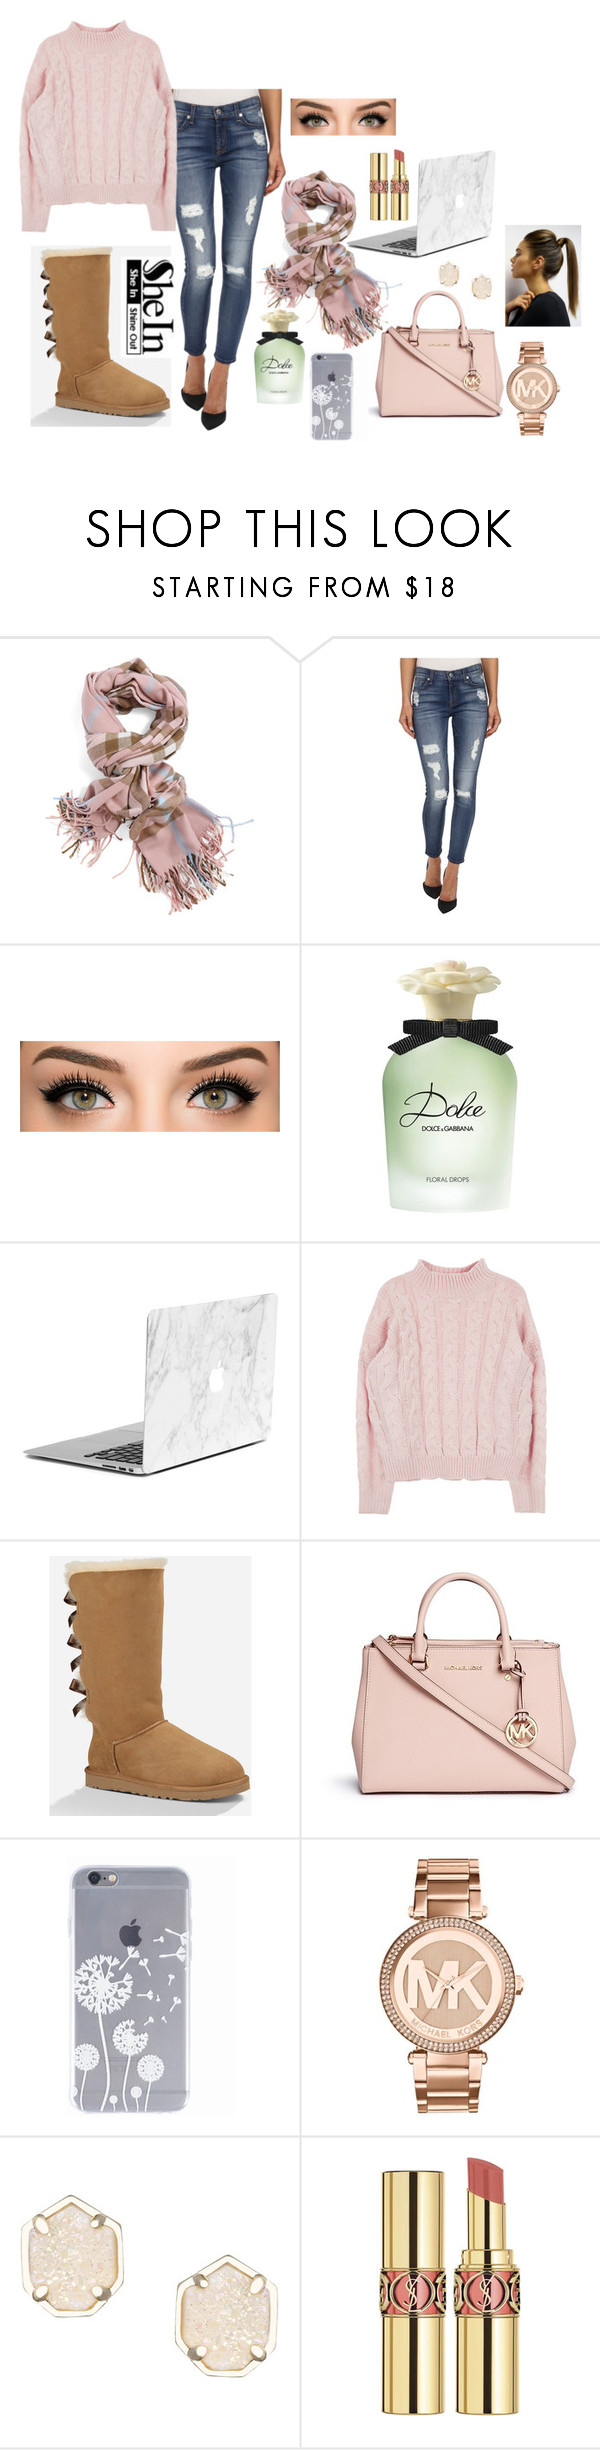 """""""editing day"""" by melody02craig on Polyvore featuring 7 For All Mankind, Dolce&Gabbana, UGG Australia, Michael Kors, Kendra Scott and Yves Saint Laurent"""